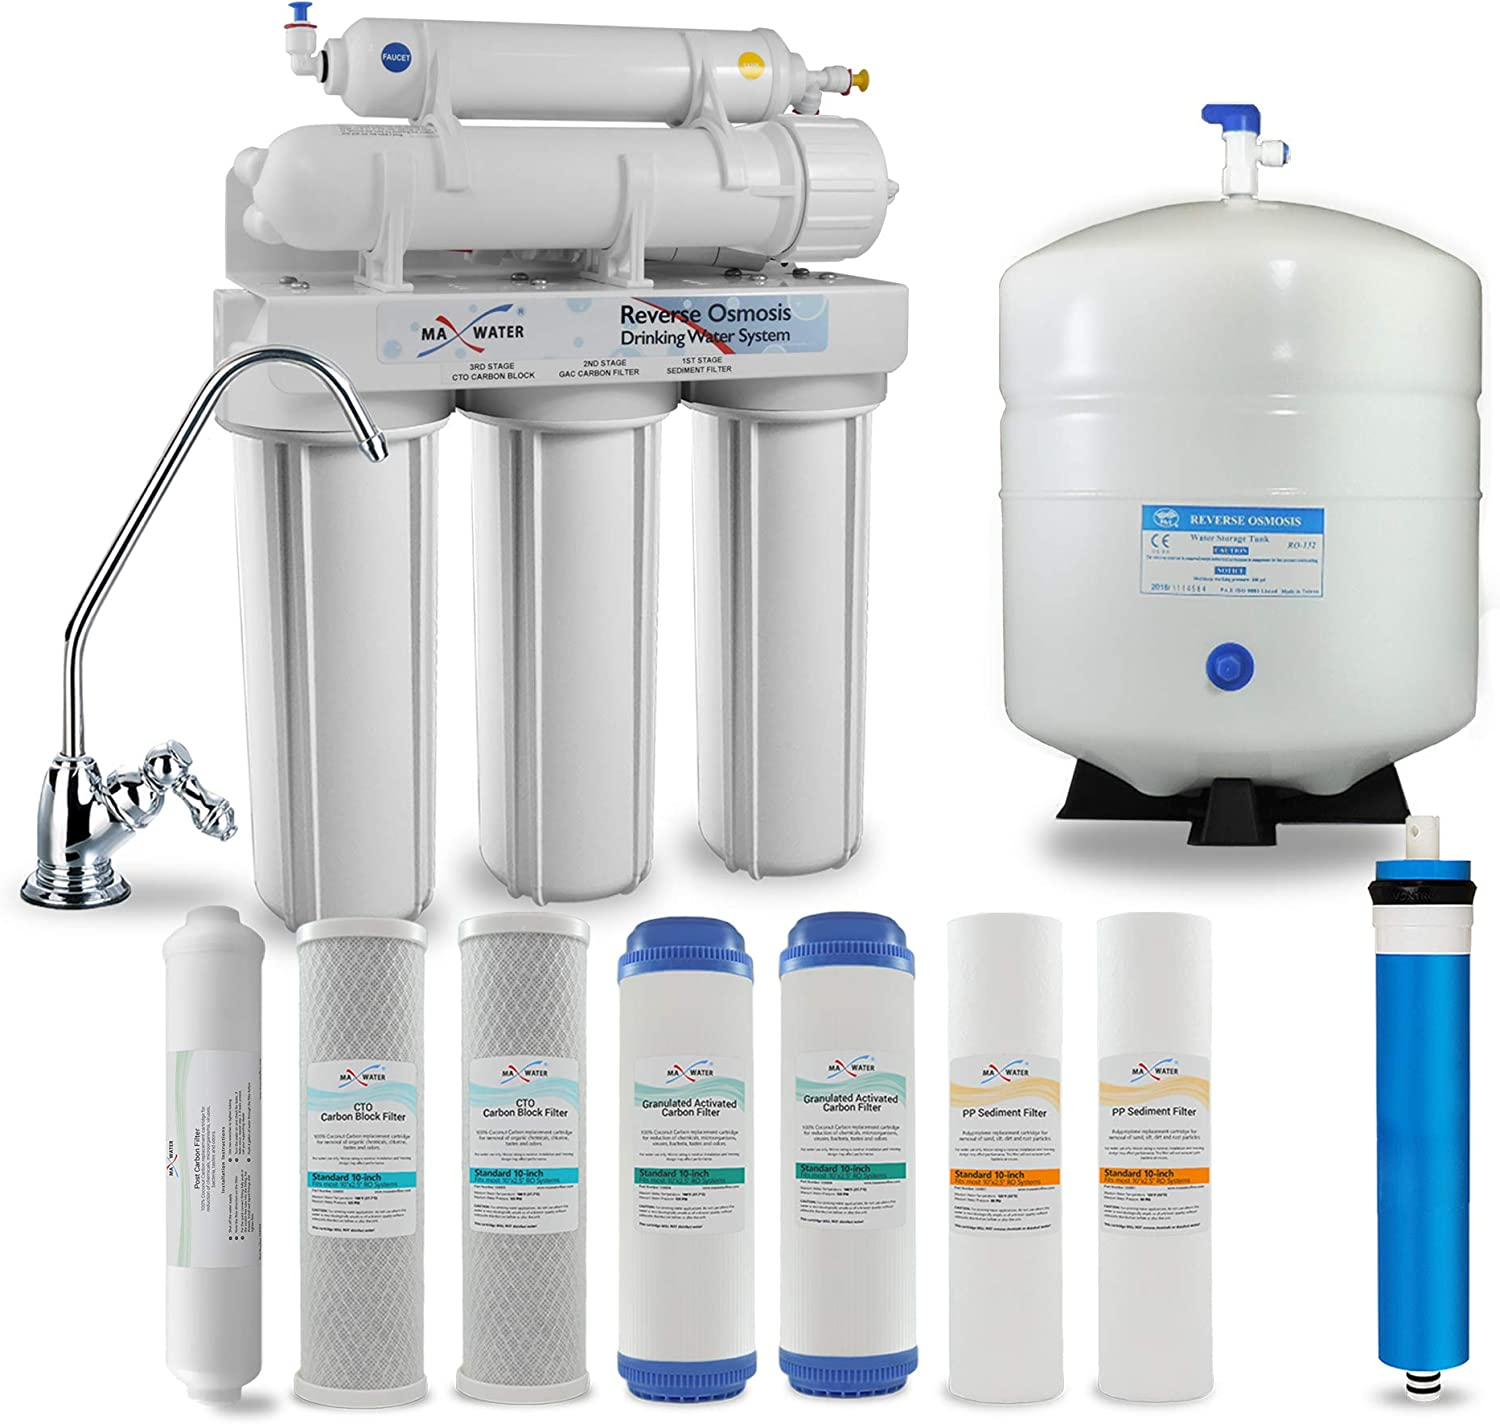 Max Water 5 Stage 56% OFF Home Wa Osmosis Reverse System Virginia Beach Mall